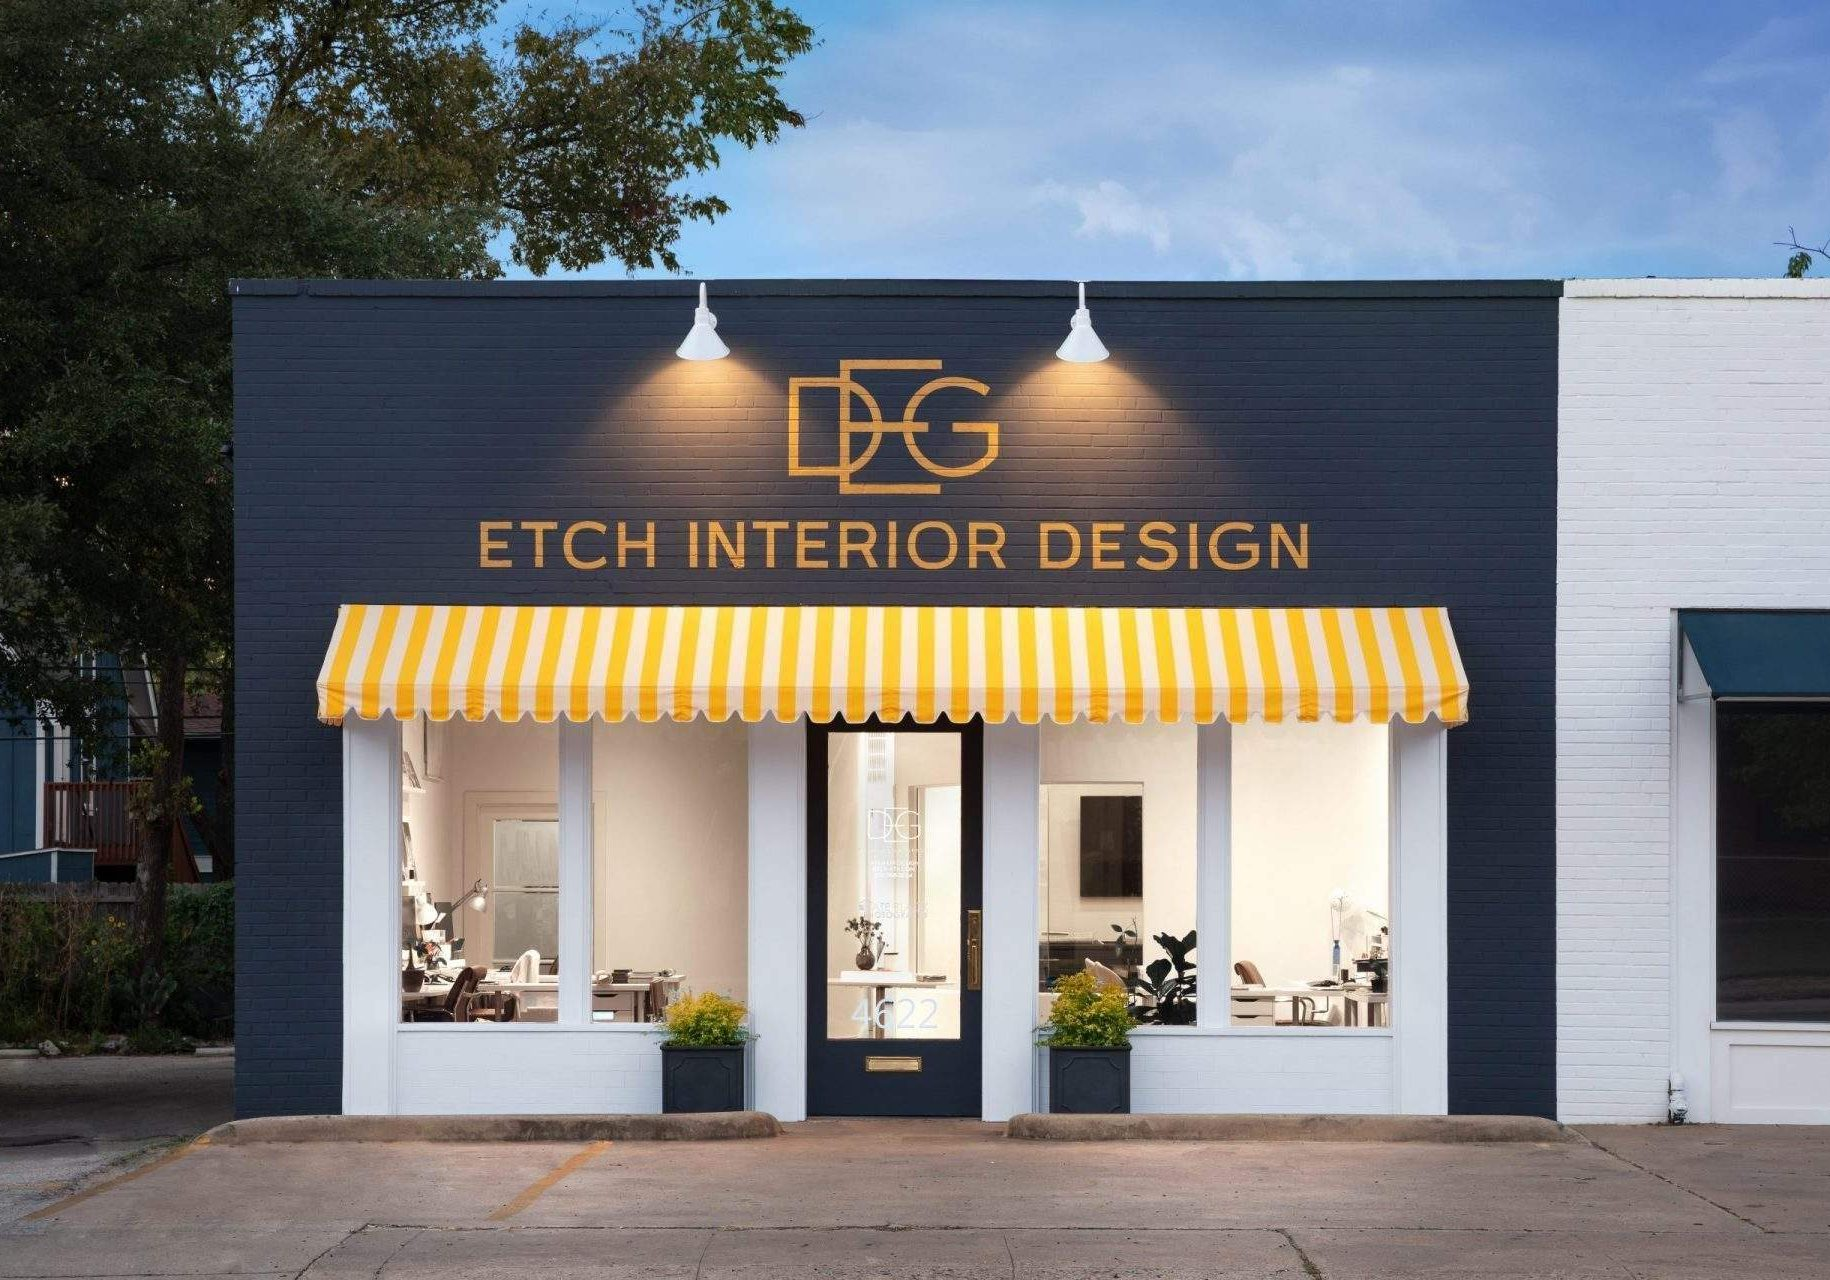 design austin   etch interior design exterior of office with lights front view   austin, texas